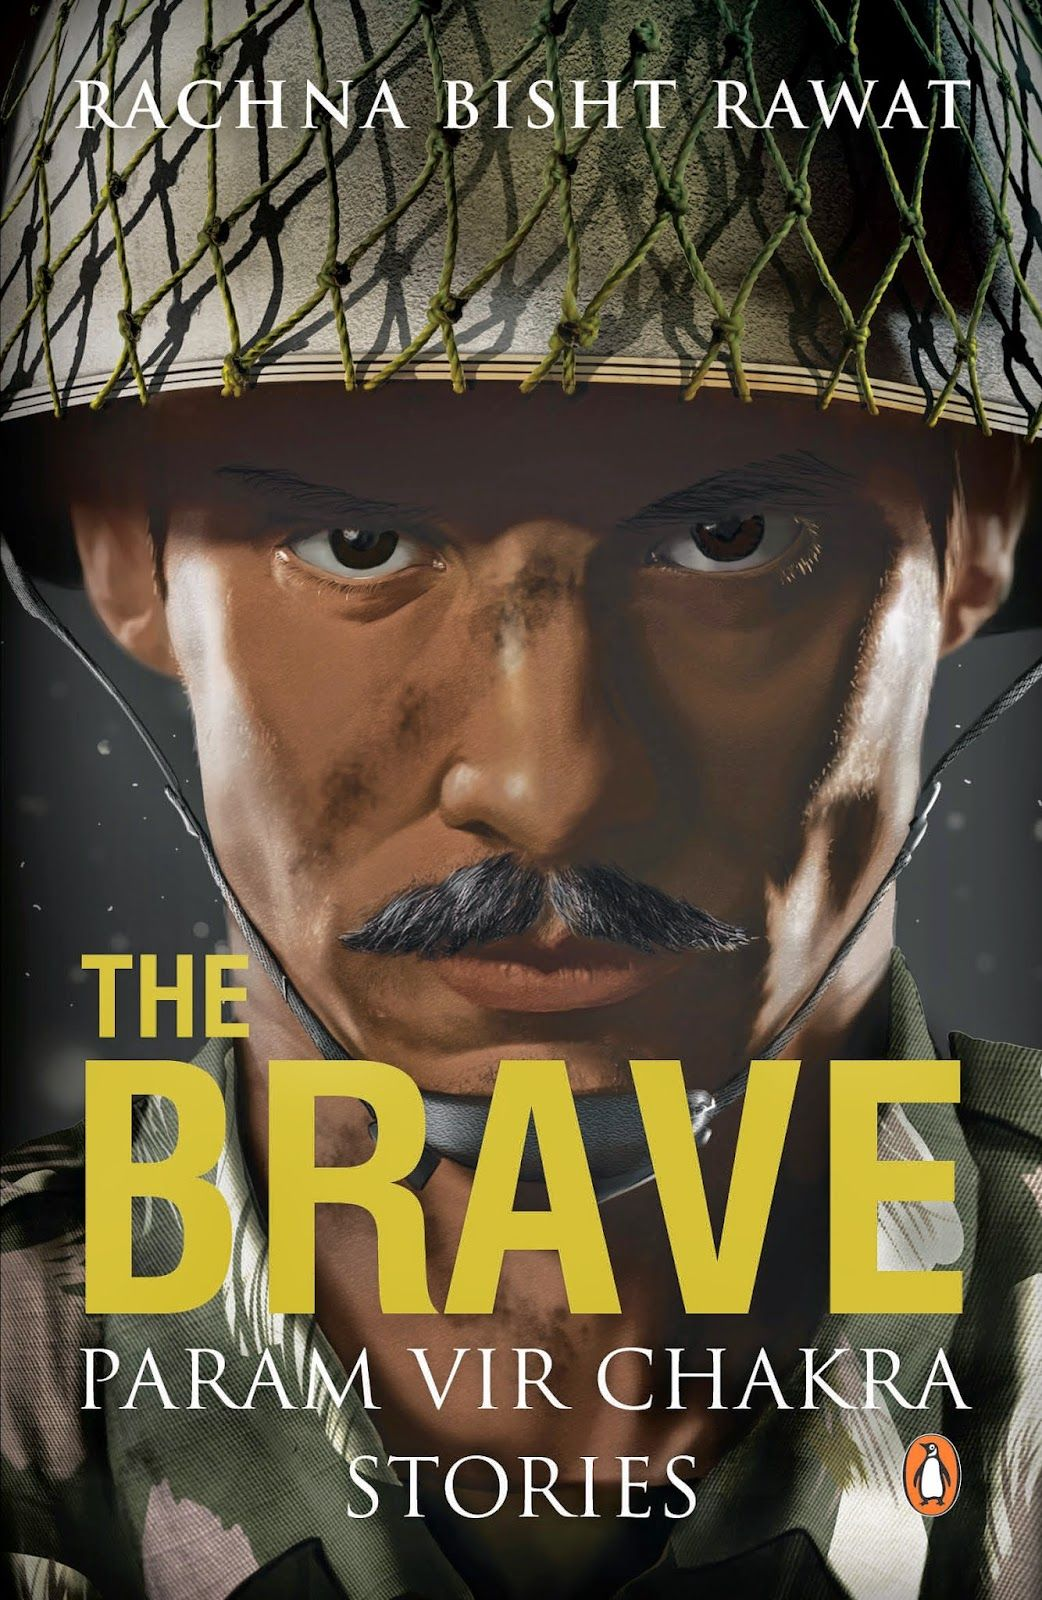 The Brave - Param Vir Chakra Stories #Book by #Author Rachna Bisht Rawat | परम वीर चक्र